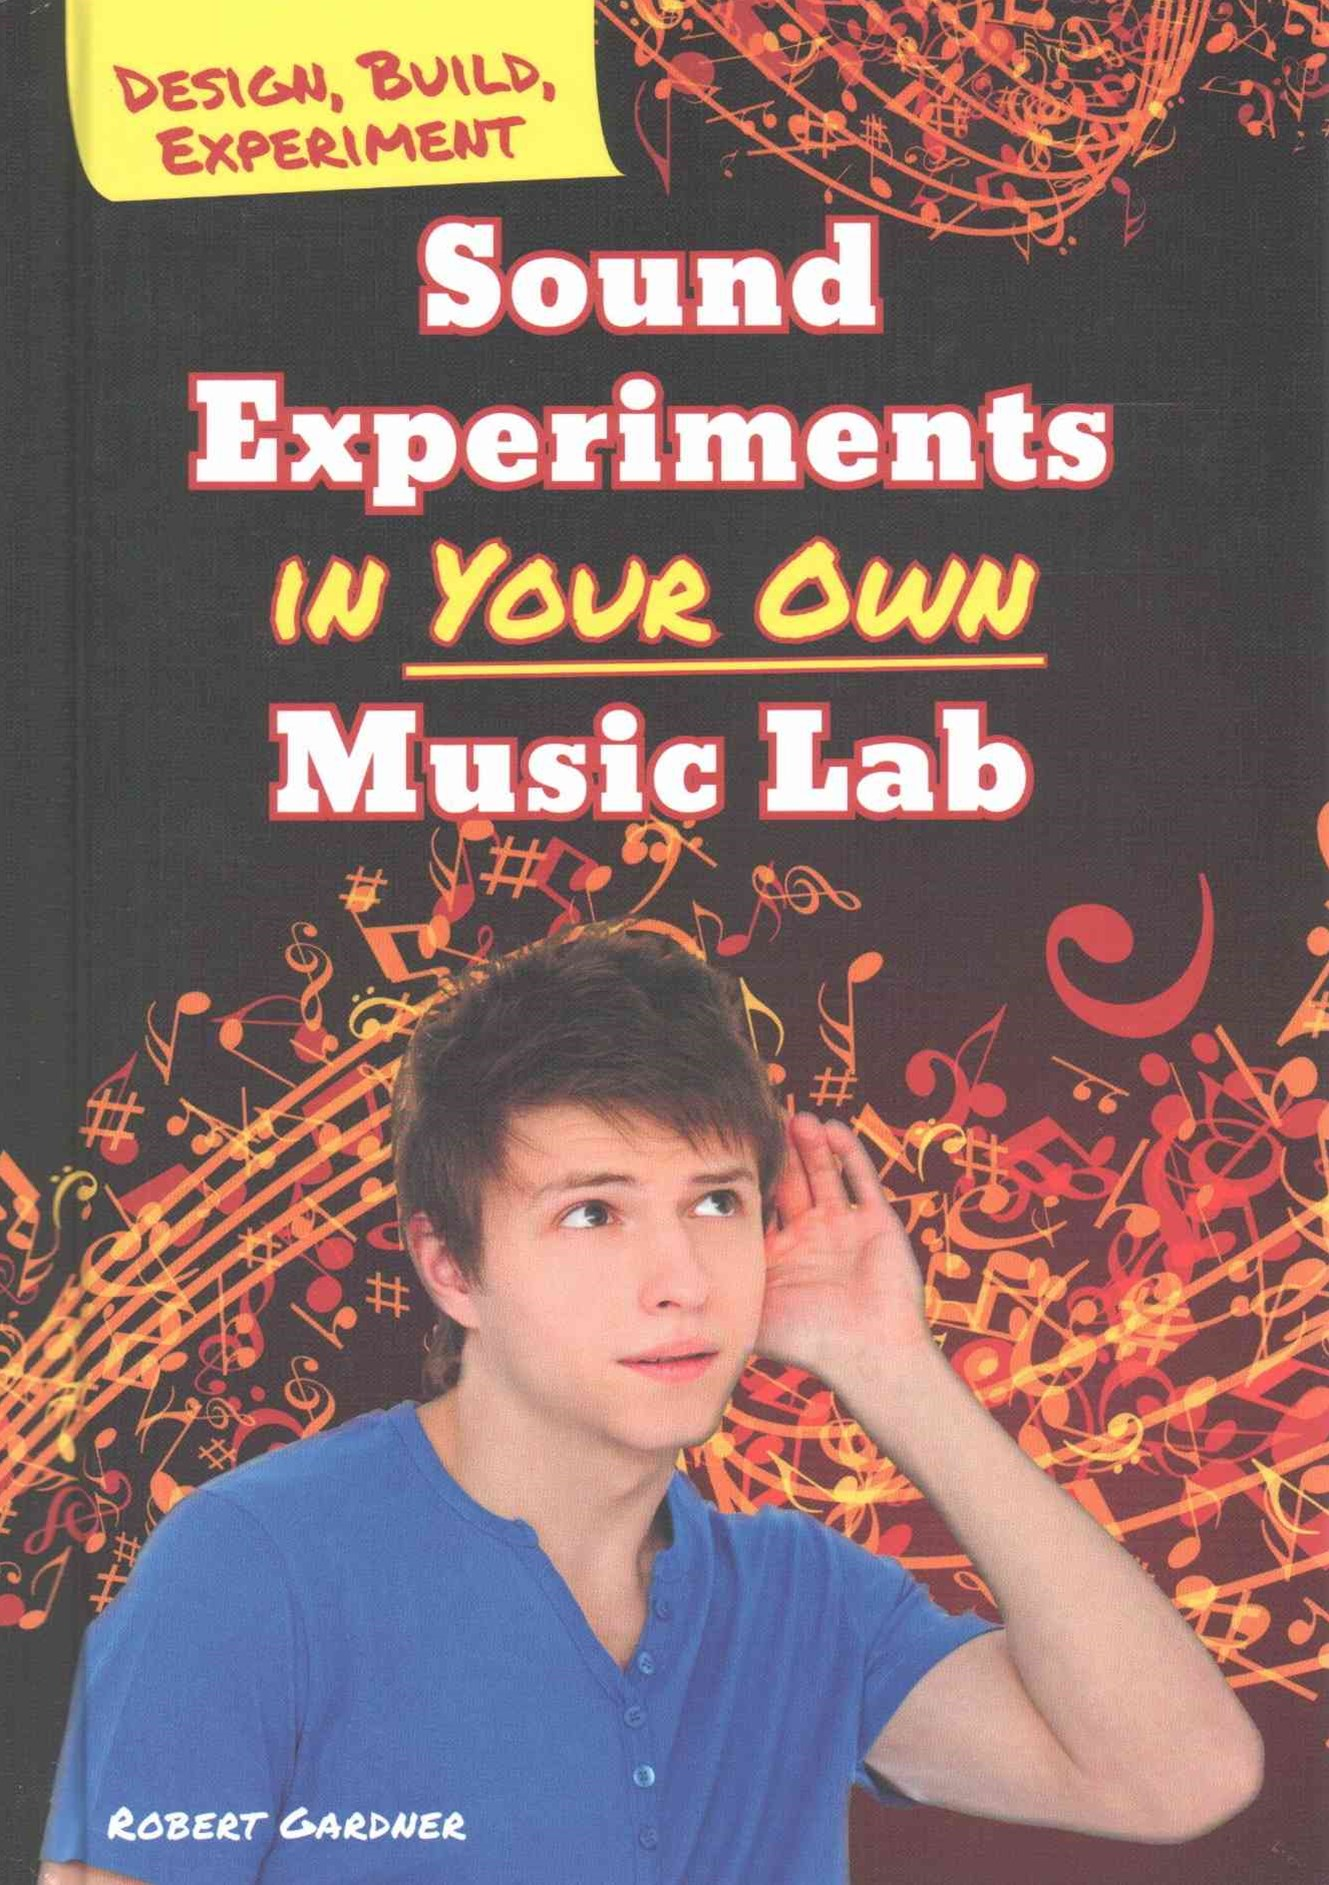 Sound Experiments in Your Own Music Lab